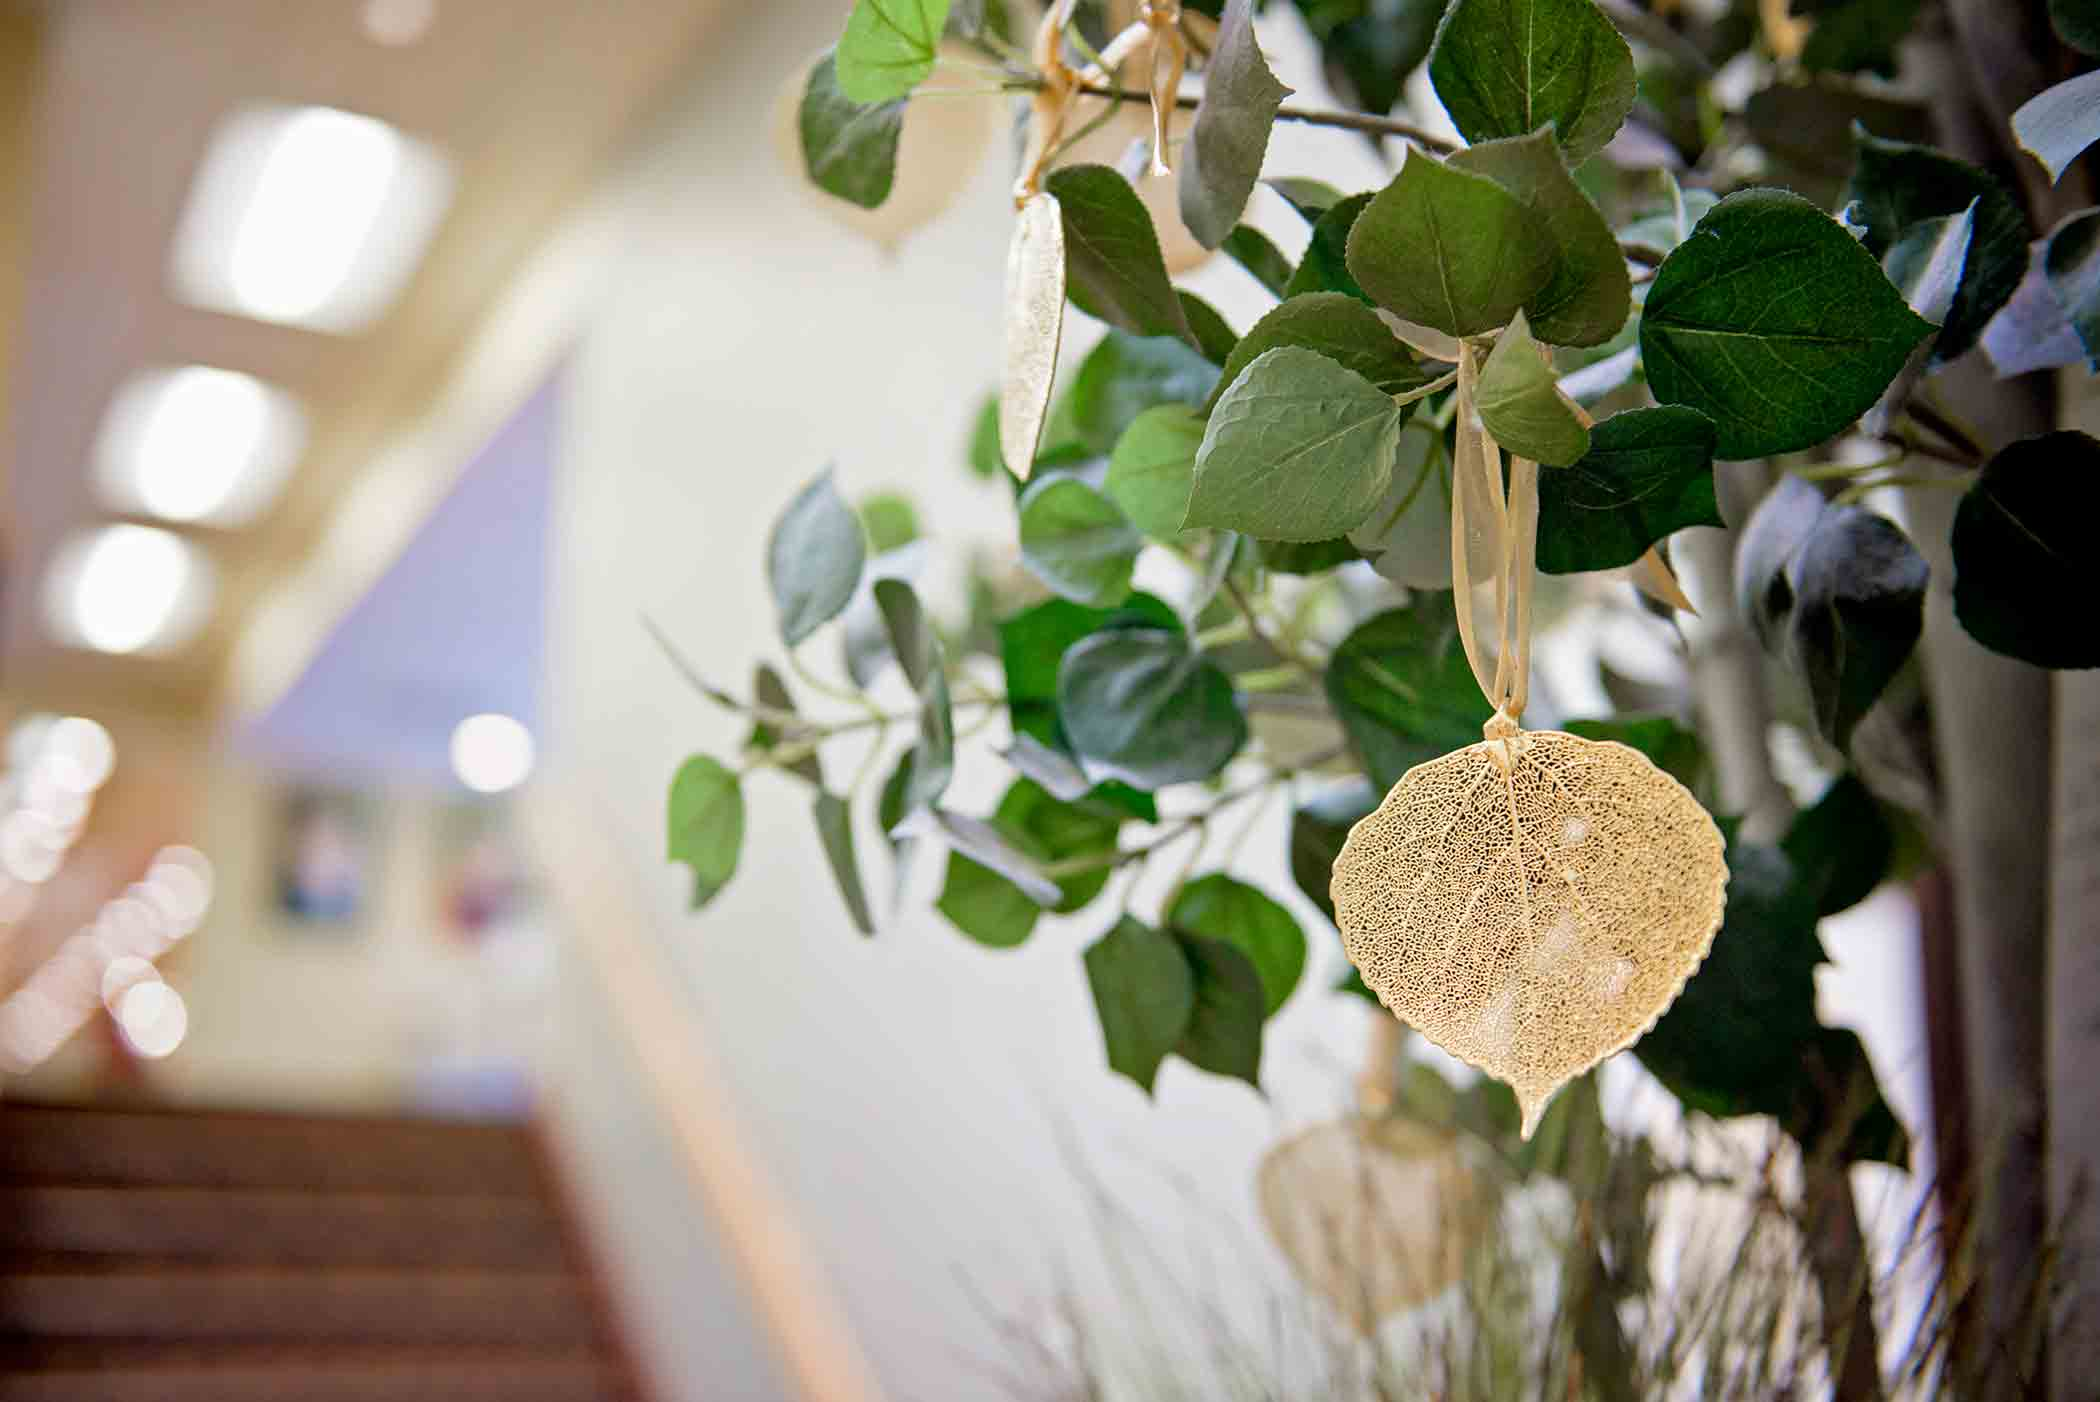 A photo of an Aspen leaf at Aspen Academy